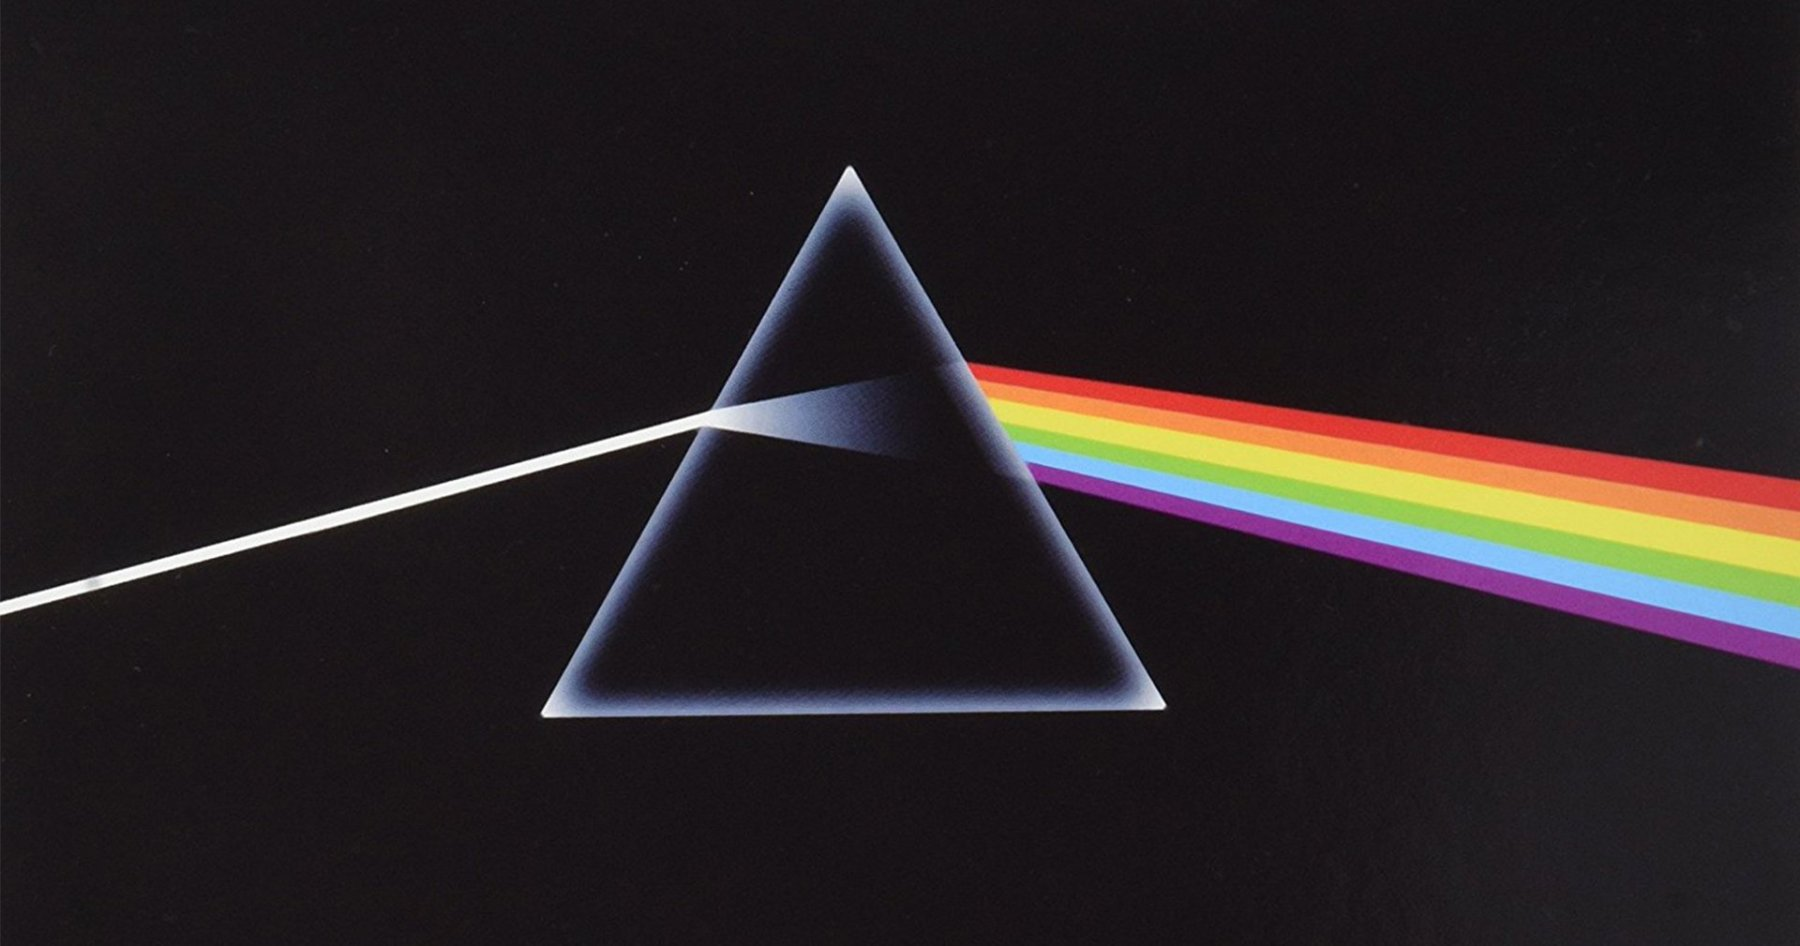 So You Wanted to Buy the 'Dark Side of the Moon' Painting?